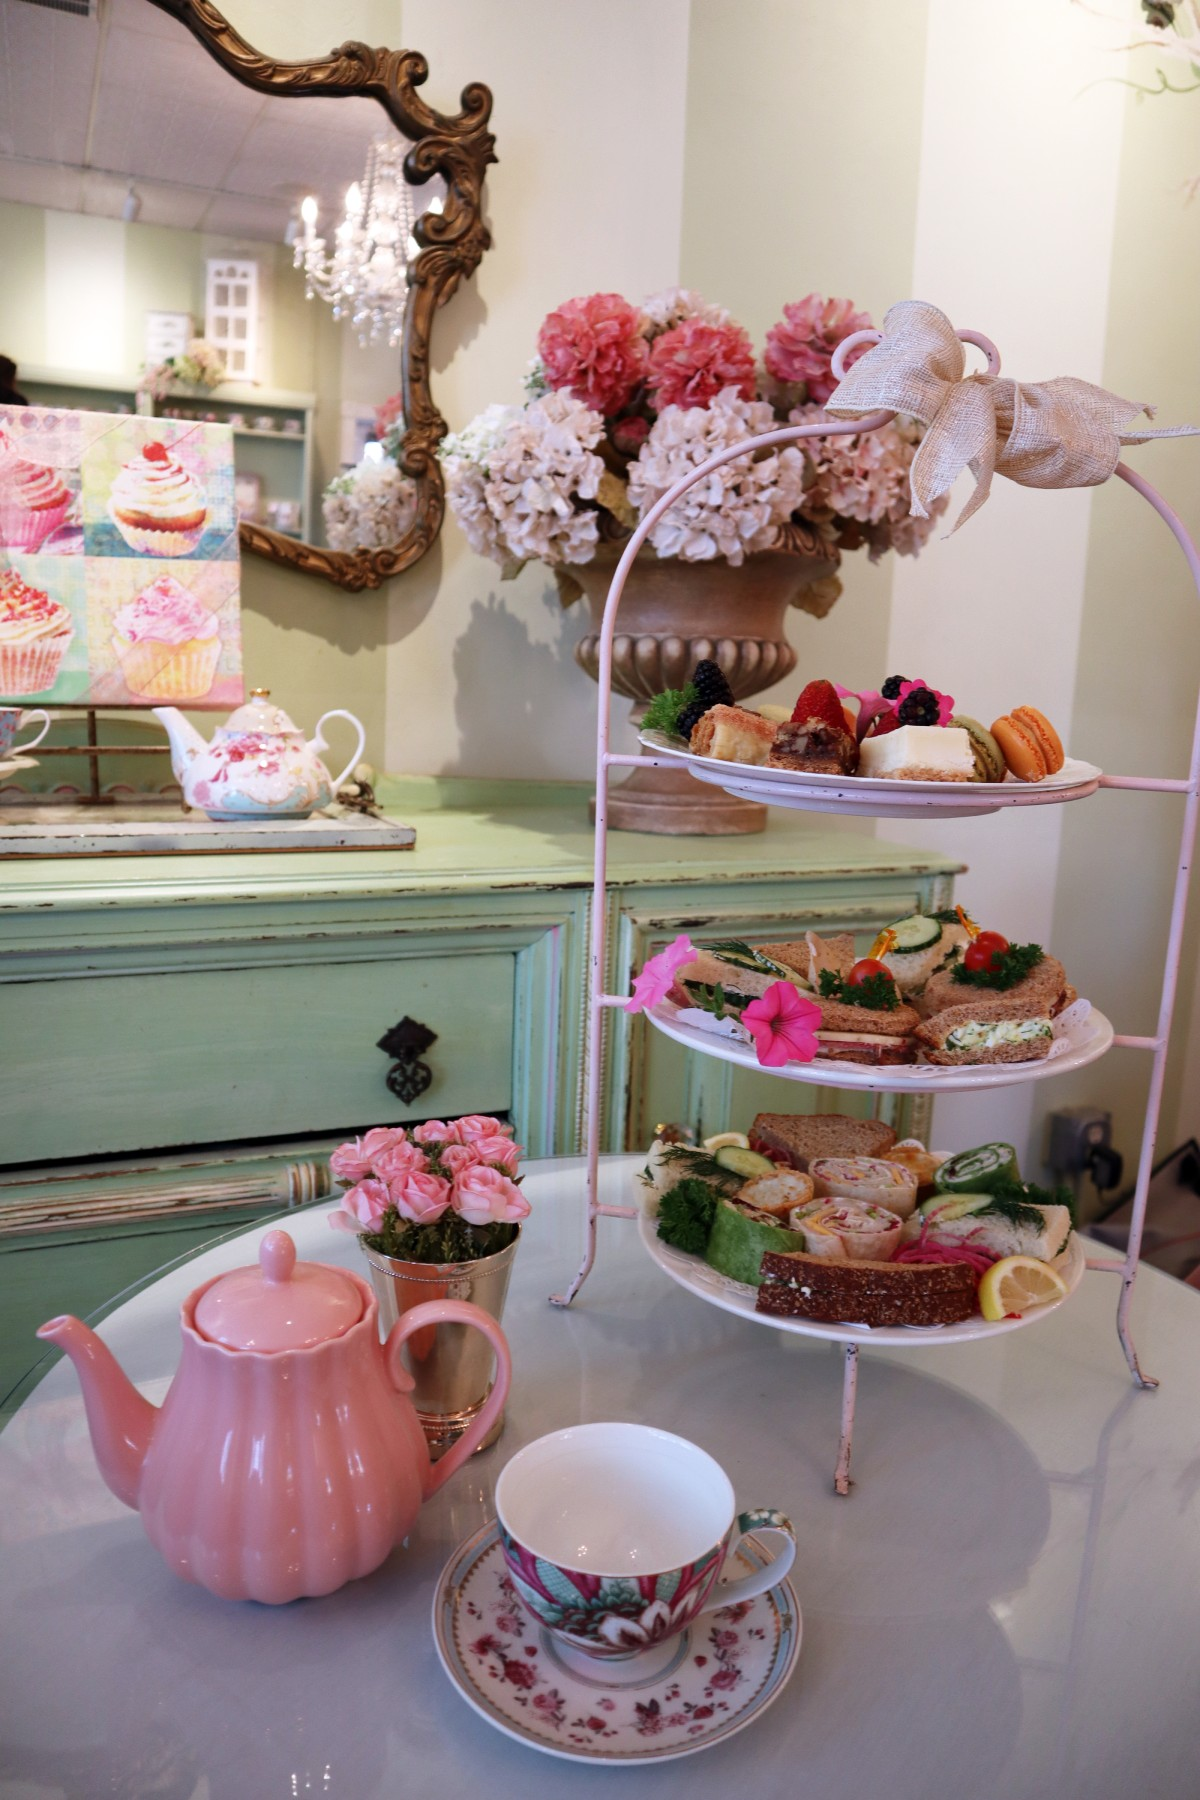 Tea set including tea pot, saucer and cup on the table at 163 Neal Street, Pleasanton, CA 94566